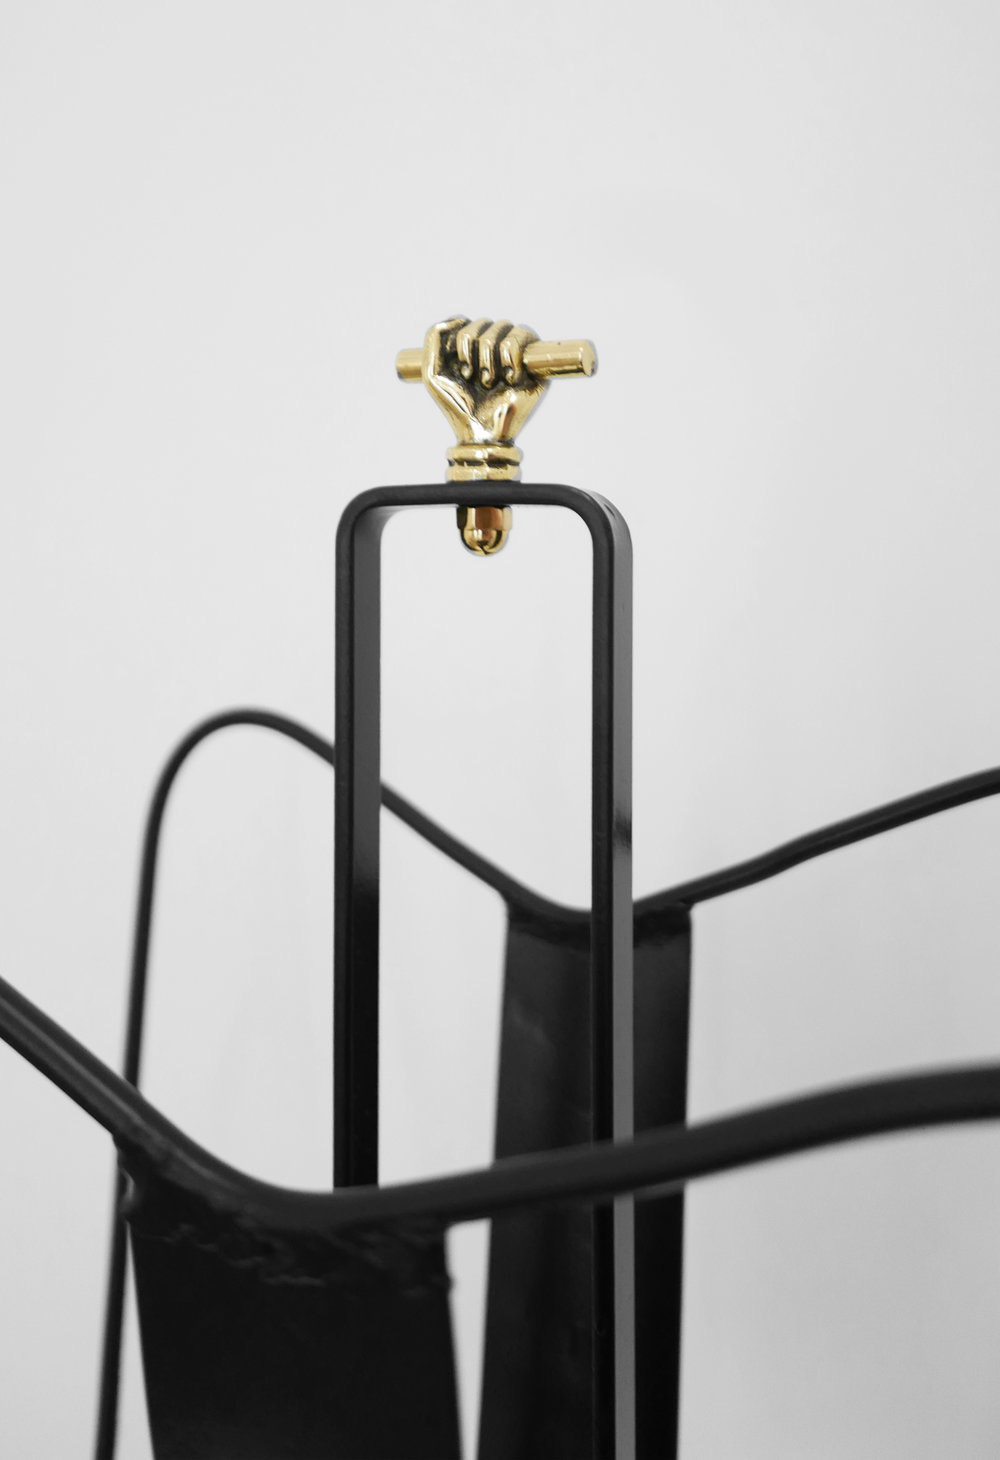 5. Jacques Adnet, 'Magazine Holder,' c. 1950s, black lacquered metal, brass, 18H x 13W x 8D inches.jpg